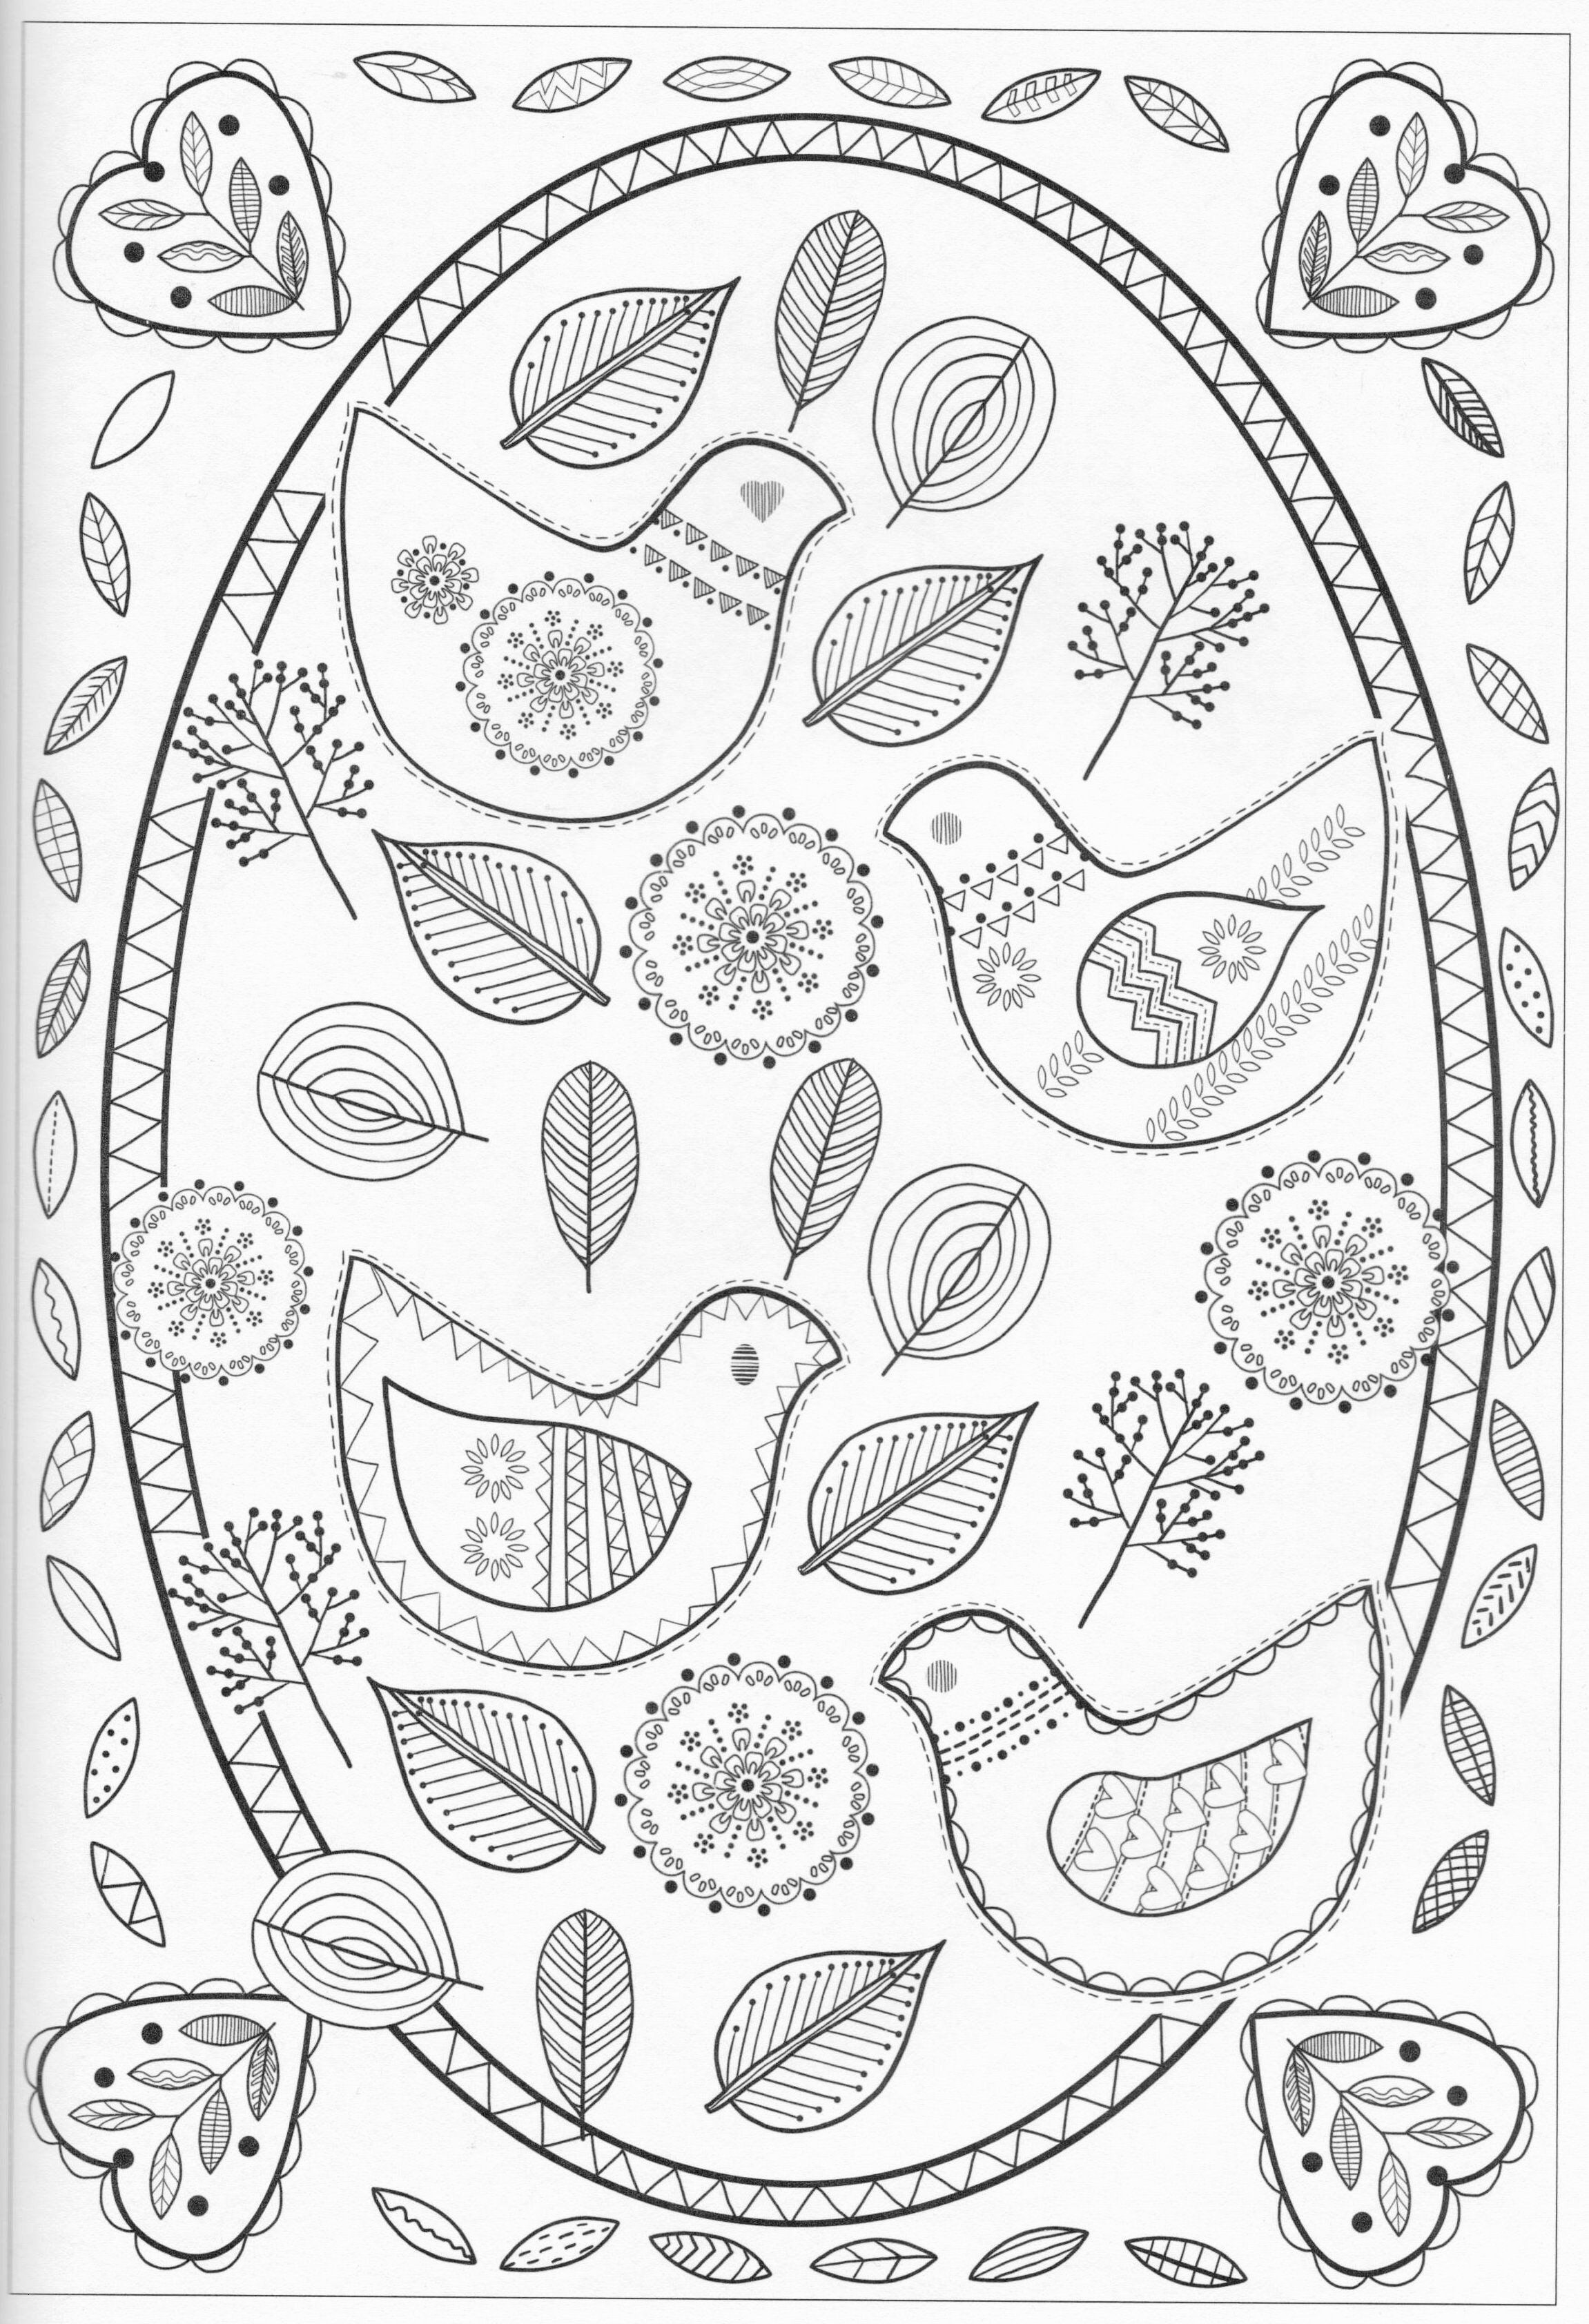 Crayola Electronic Coloring Book Unique Detailed Coloring Books Best 35 Christmas Ornaments Colo In 2020 Mandala Coloring Pages Bird Coloring Pages Free Coloring Pages